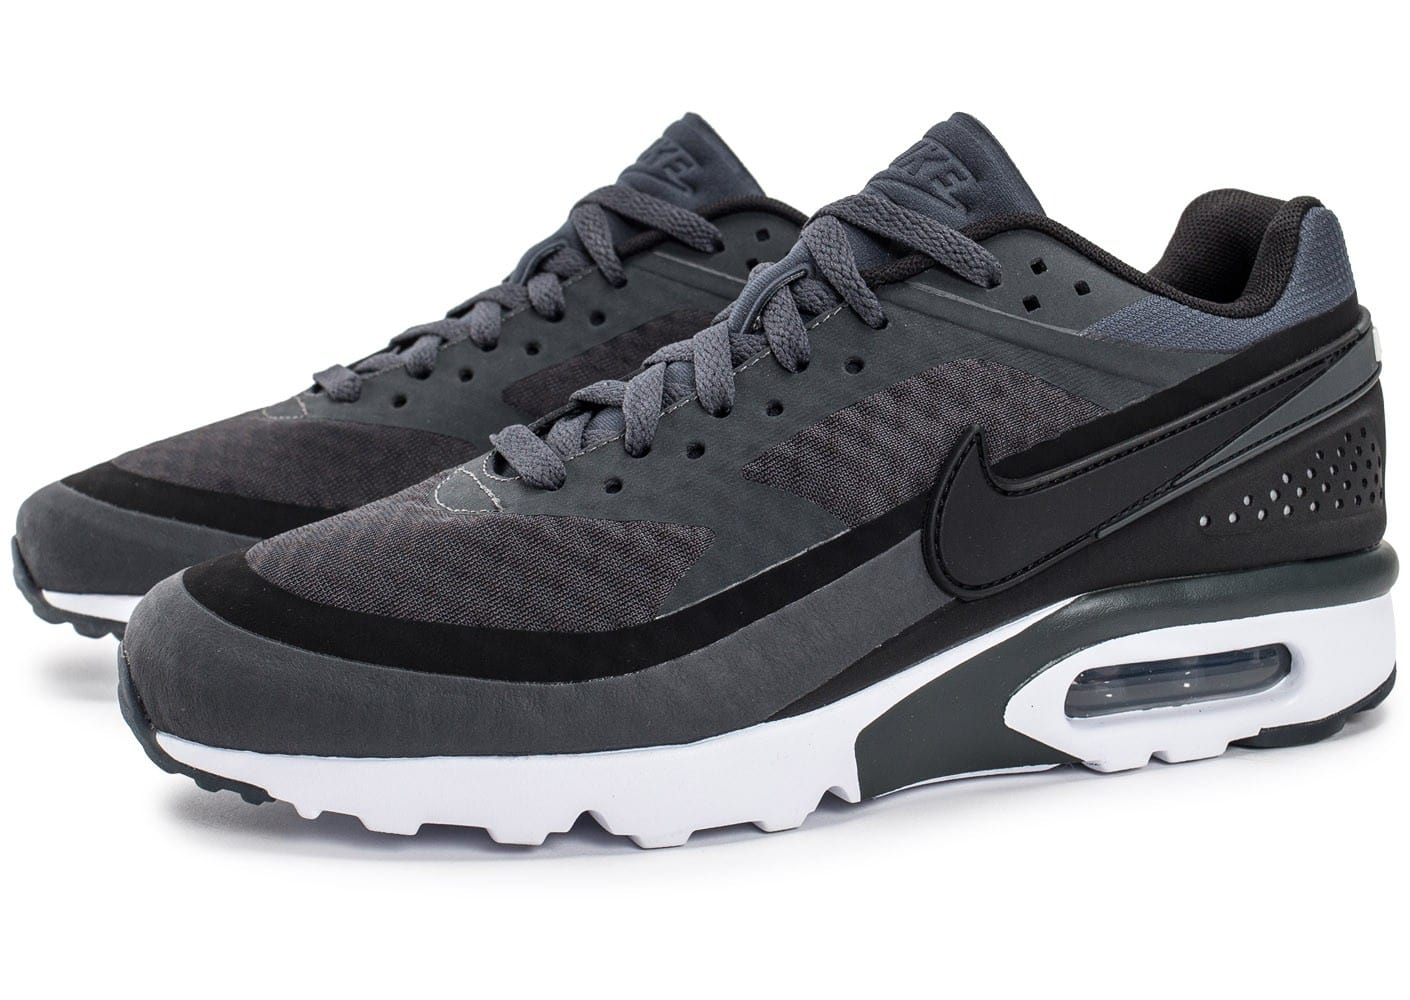 Nike Chaussures Baskets Air Max BW Ultra SE en gris homme